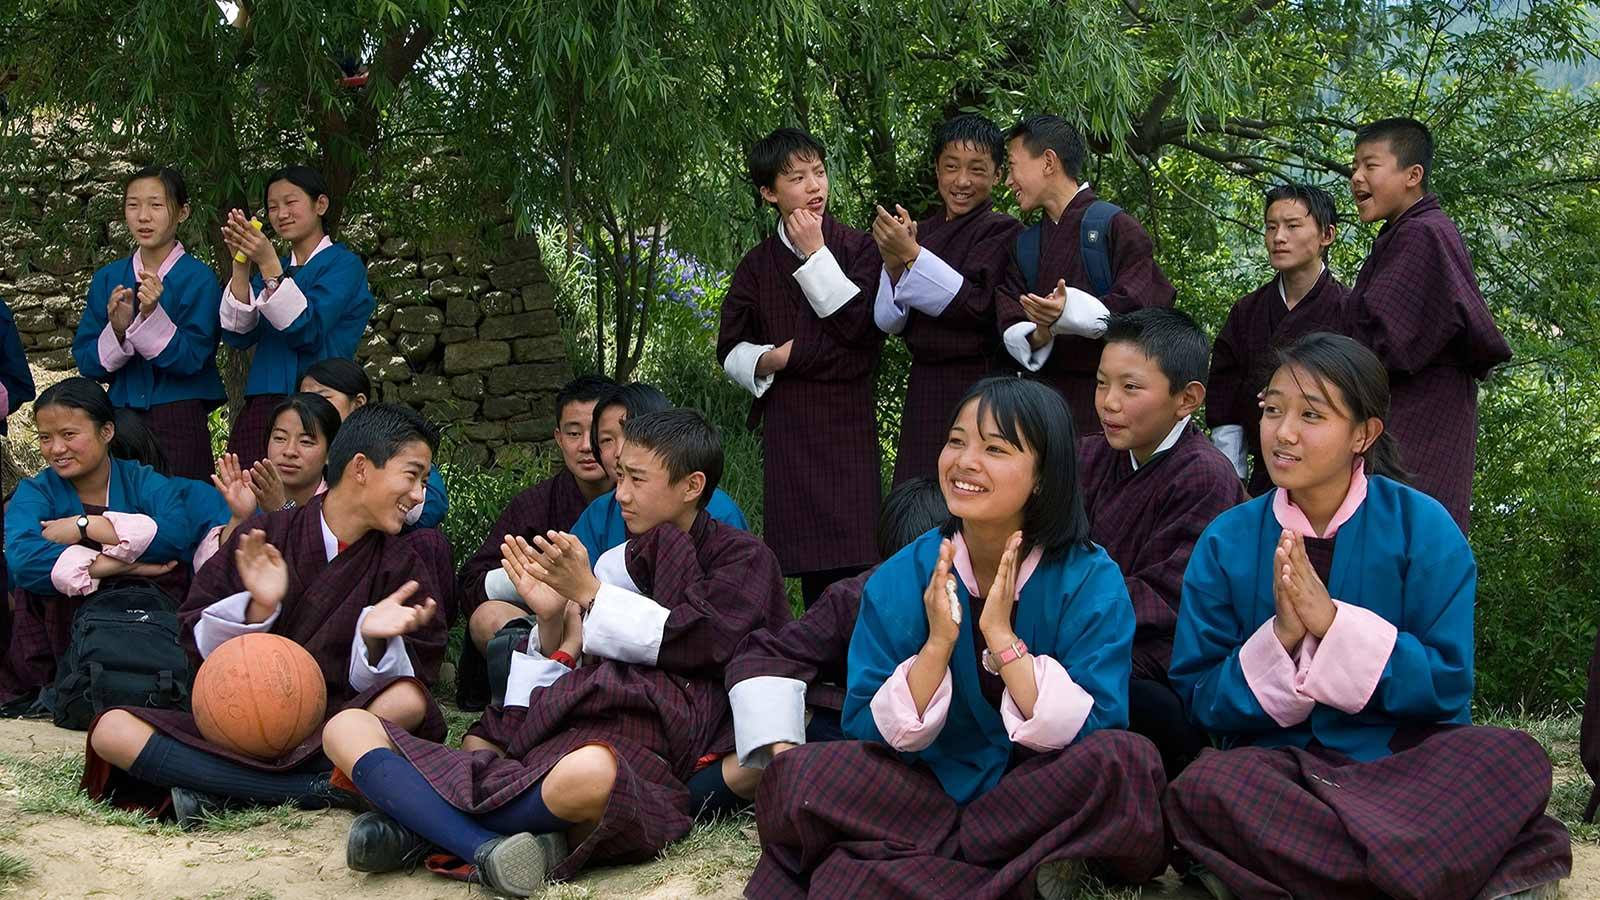 Students in their uniform